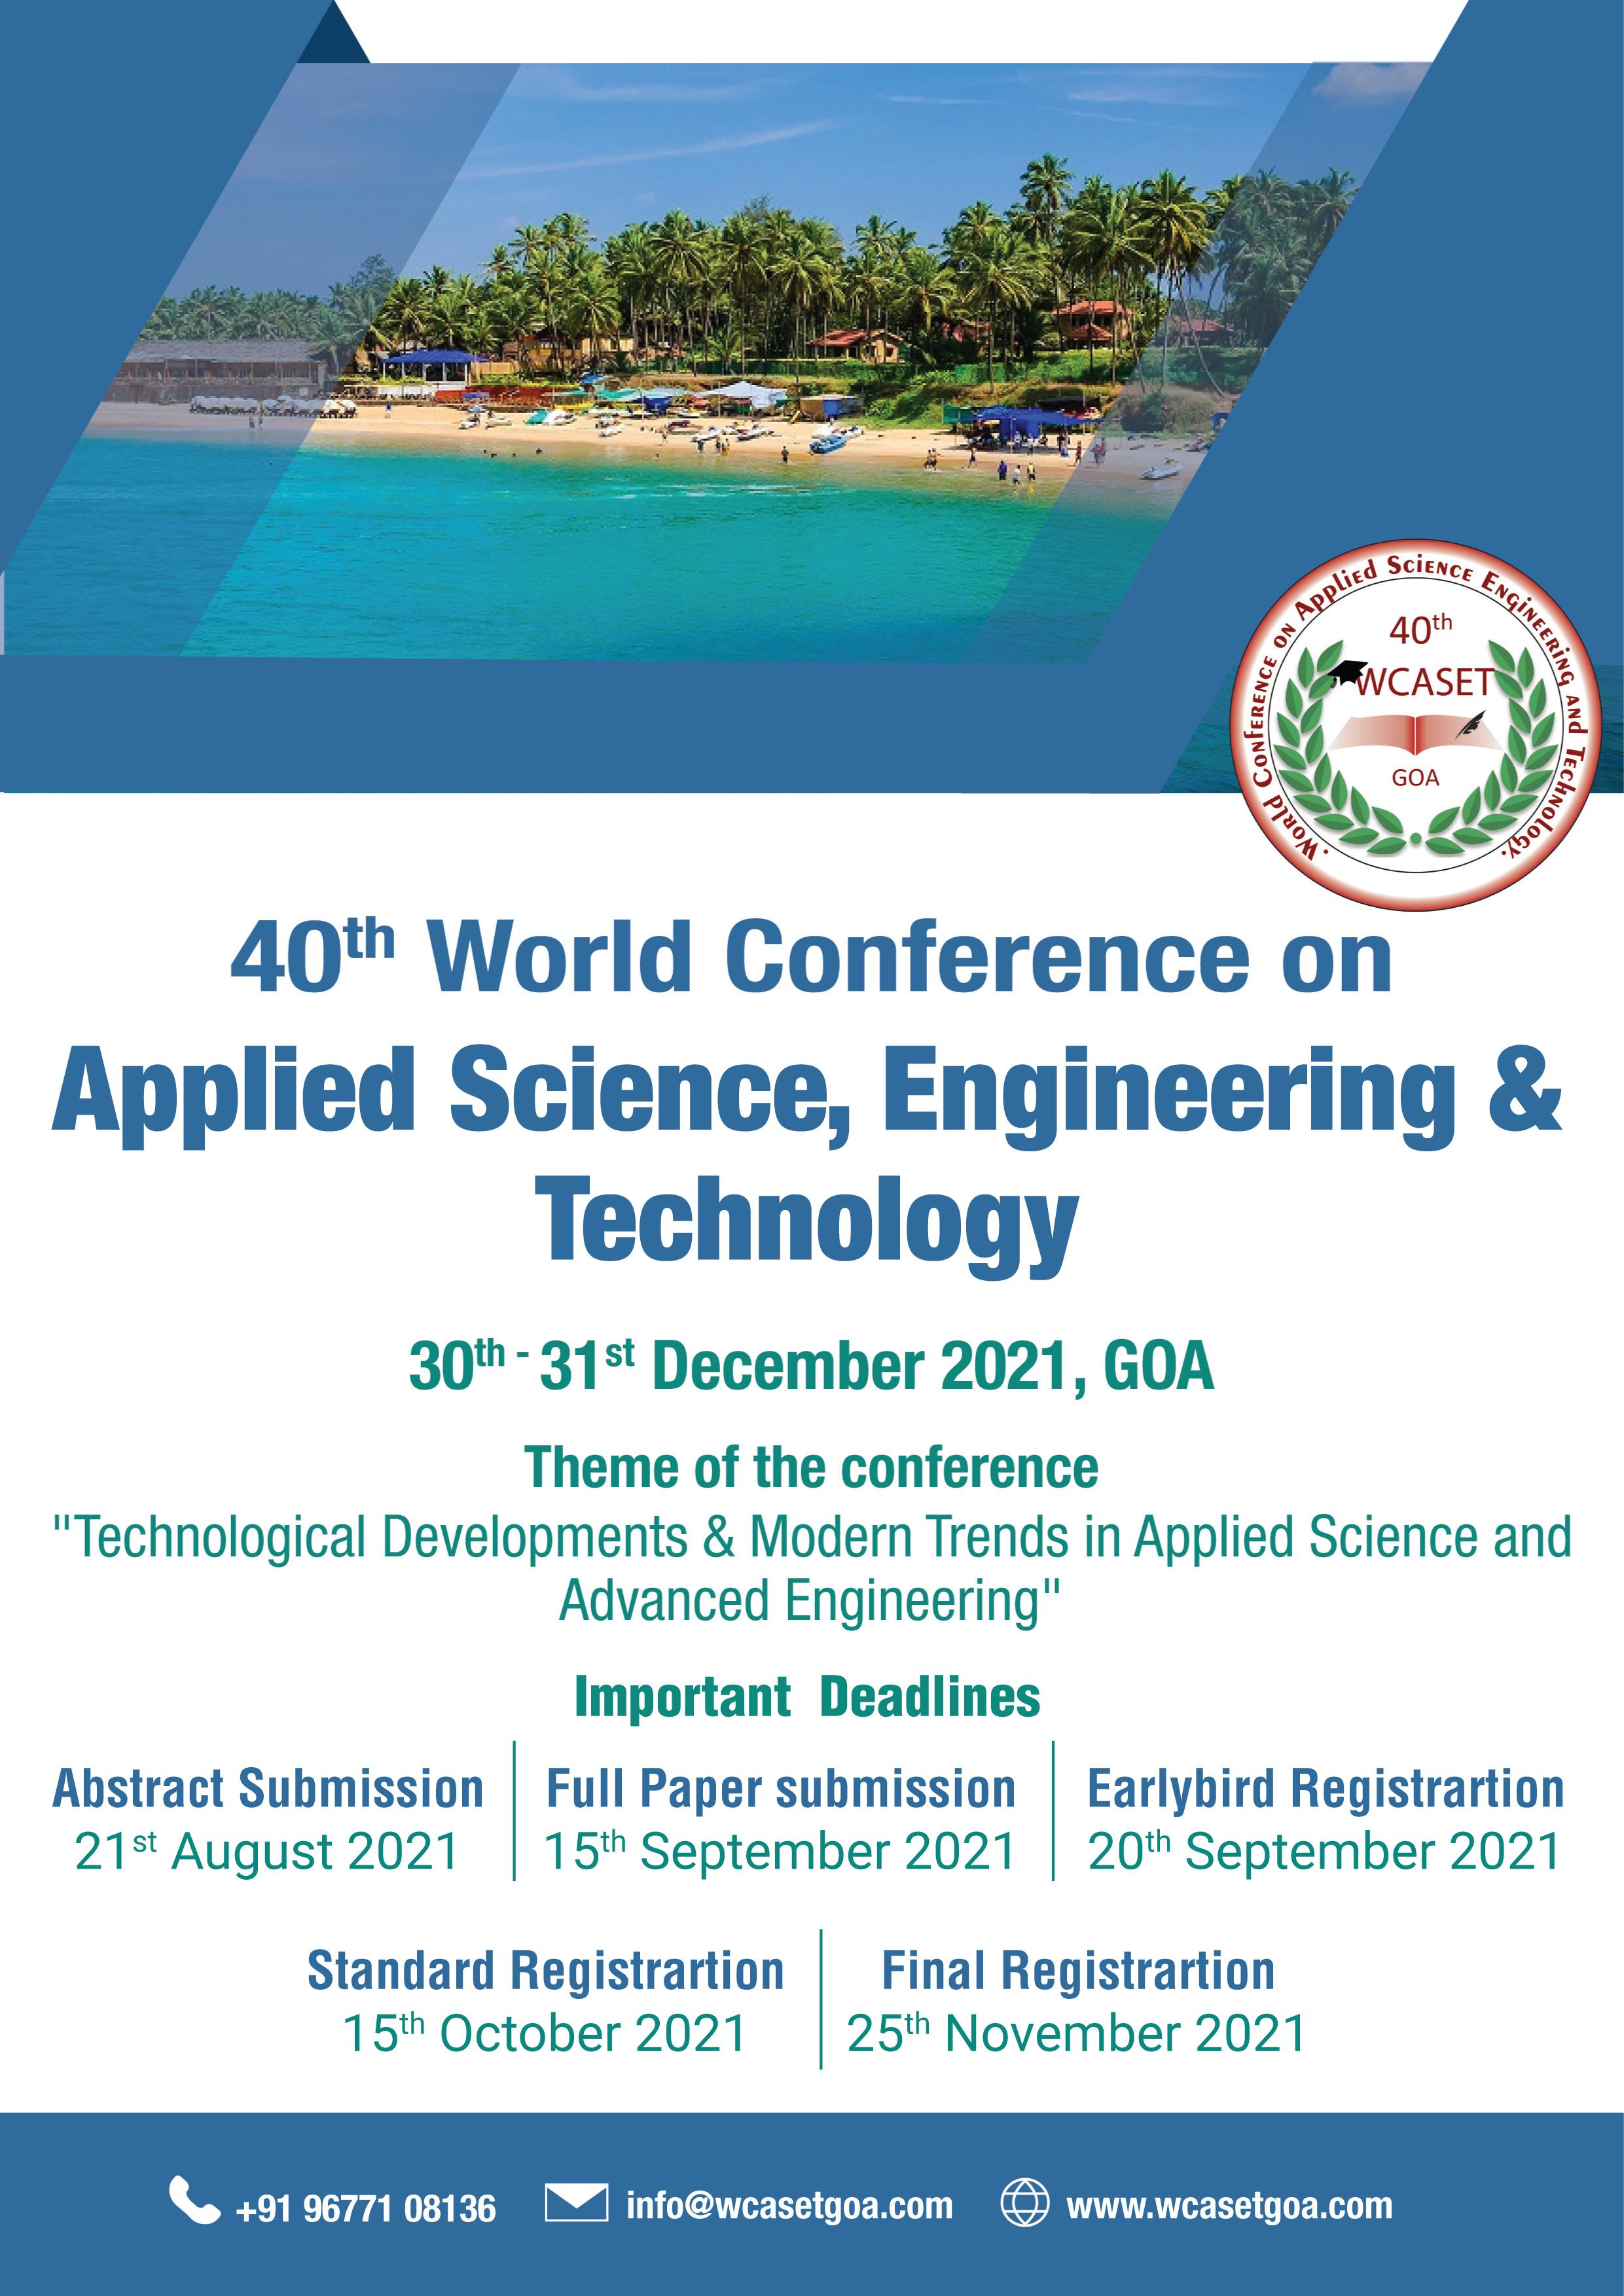 40th World Conference on Applied Science, Engineering & Technology